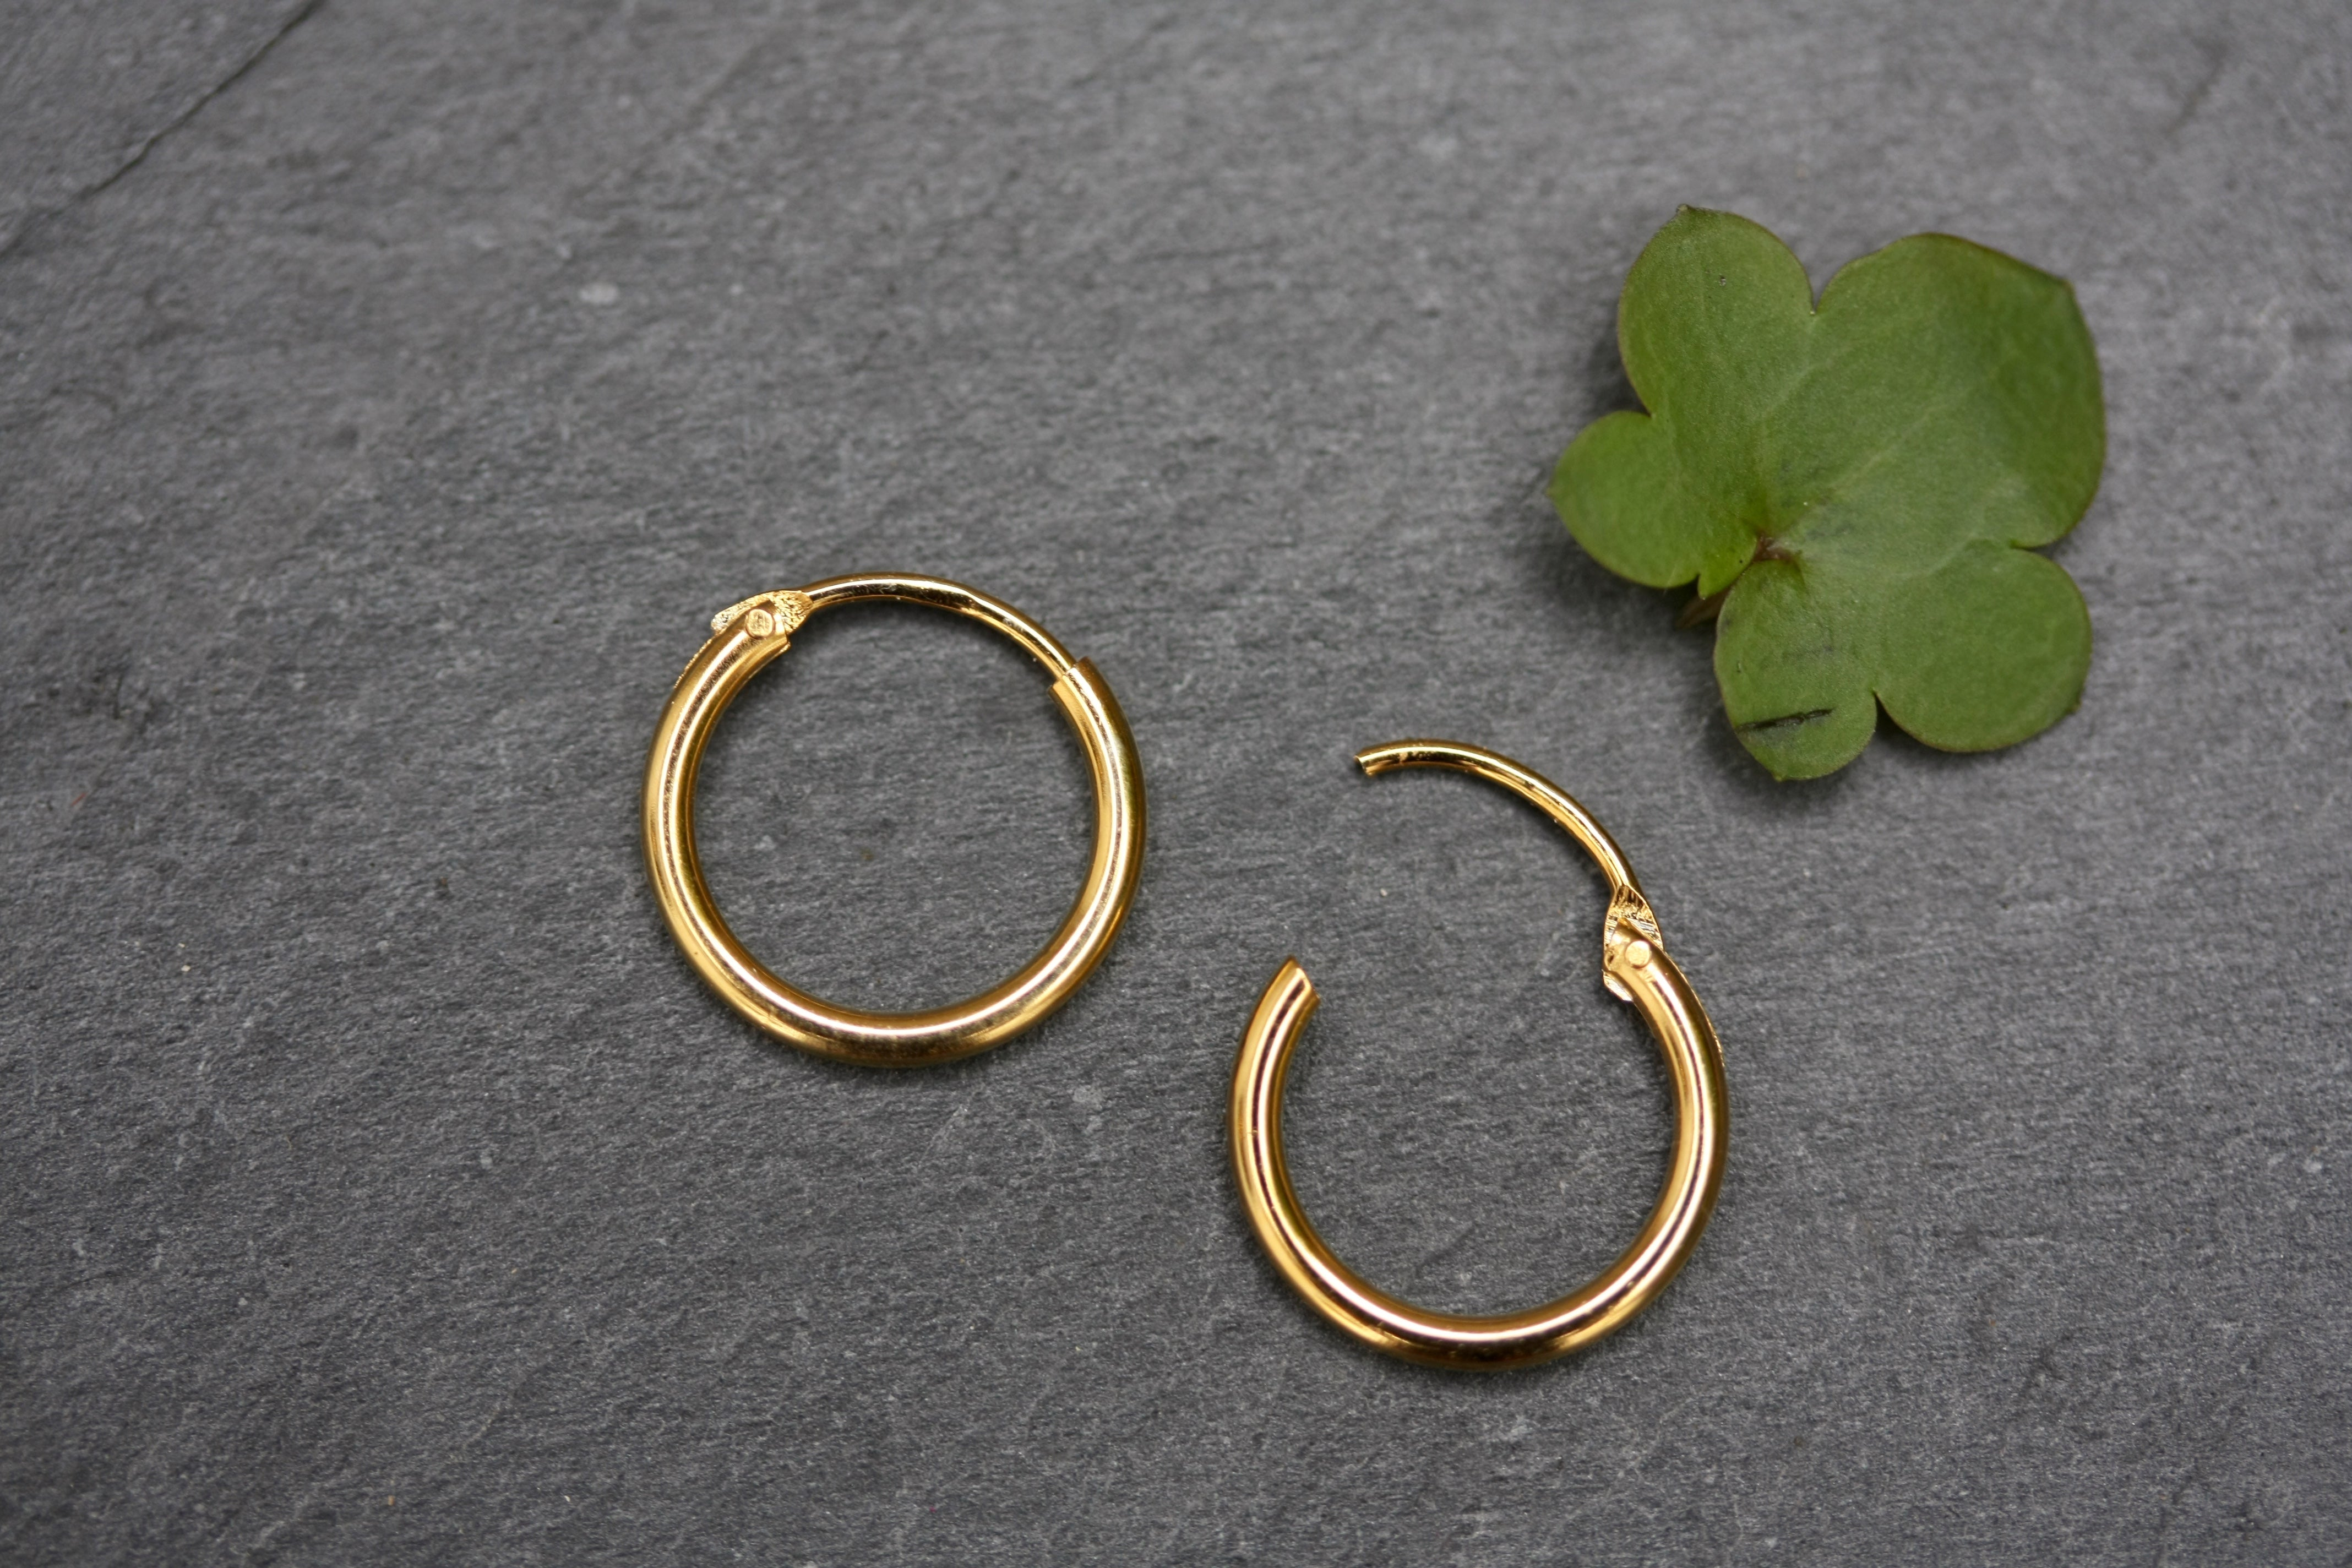 343ed3a3fb653 10mm Plain Sterling Silver Gold Plated Hoop Earrings